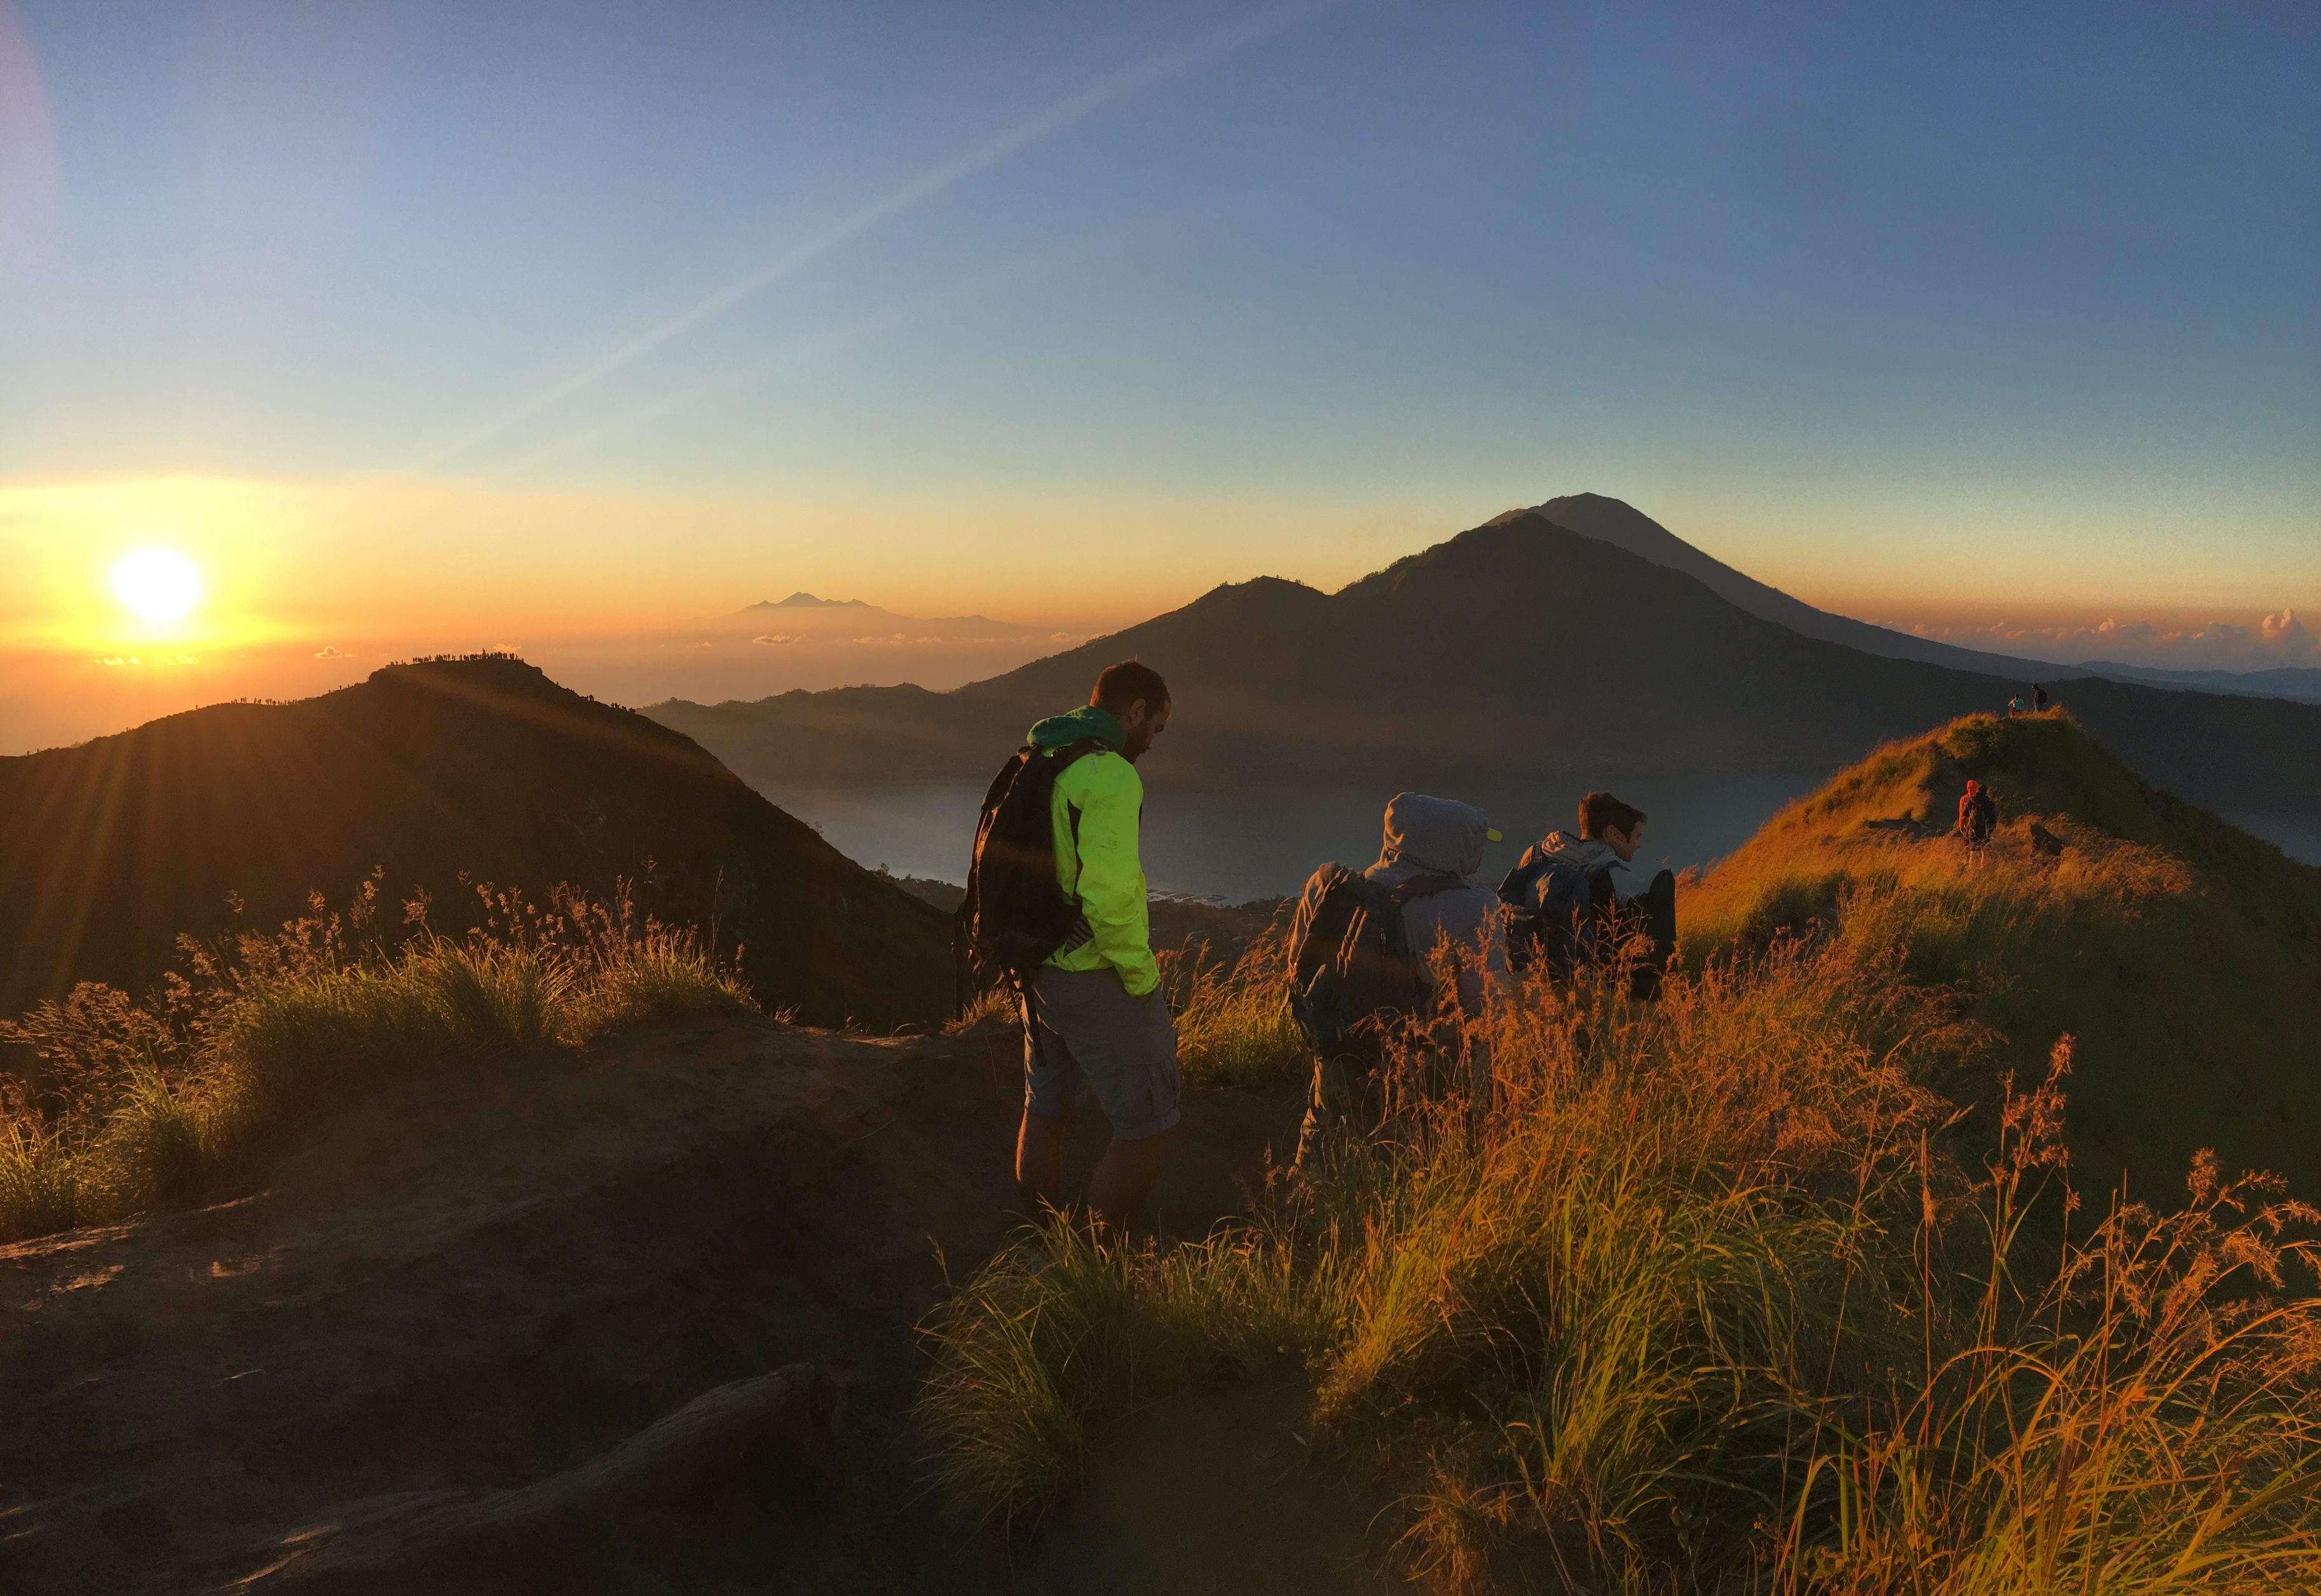 Bali Sunrise hiking tour